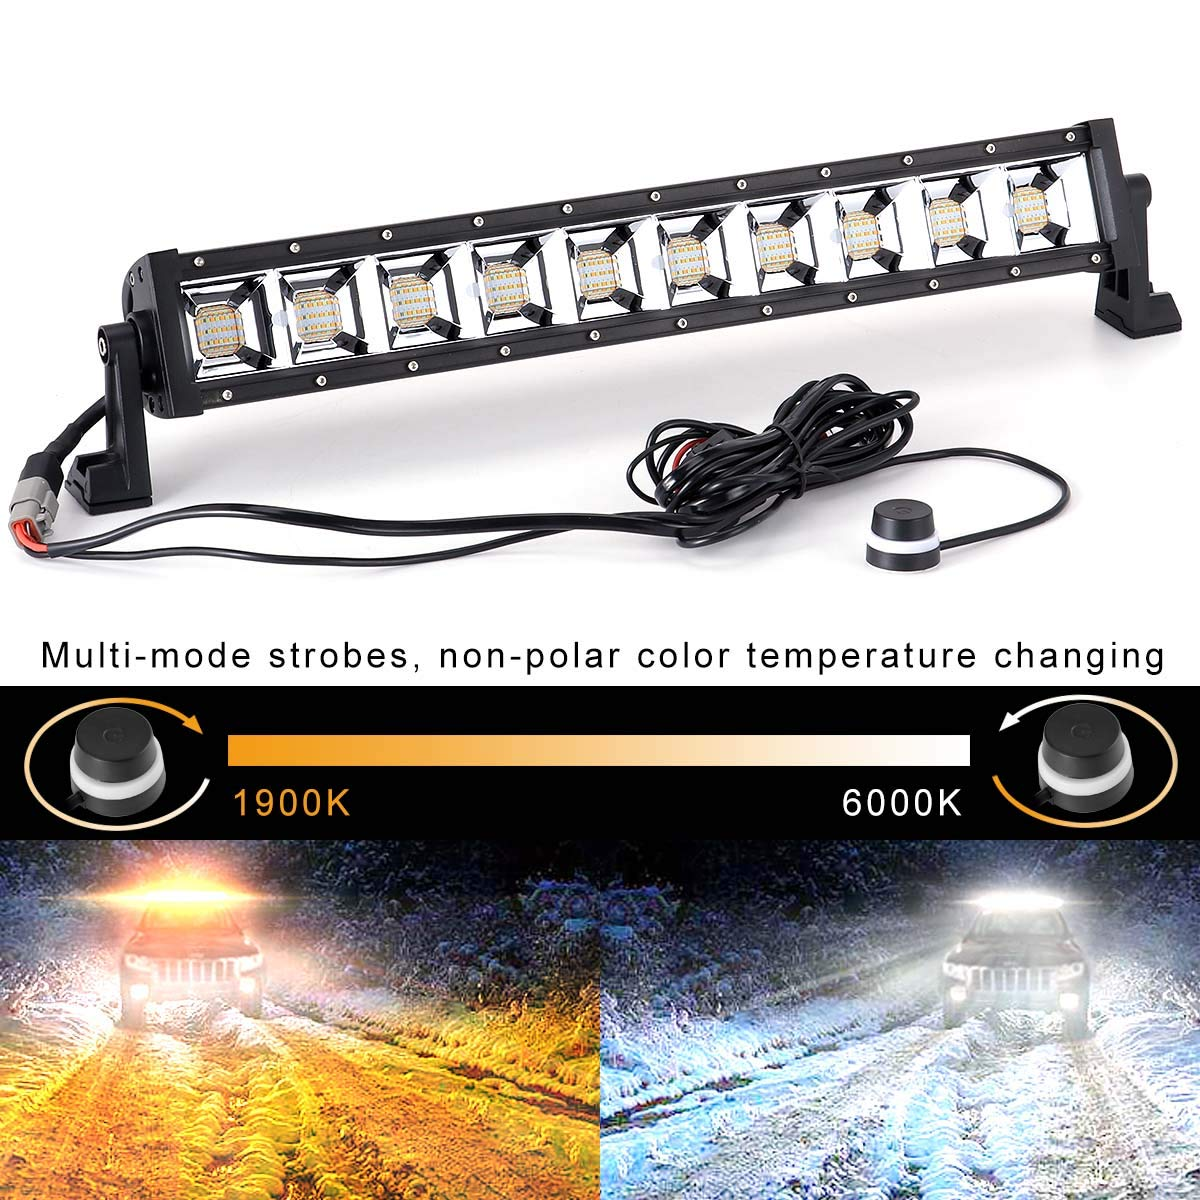 KAWELL 21.5 Inch 120W LED Light Bar Waterproof Driving Lights Off Road Lights for SUV UTE Truck ATV UTV, IP67, Color-Changing and Multiple Modes Strobes 1800K-6500K 55KAFM01-AT551